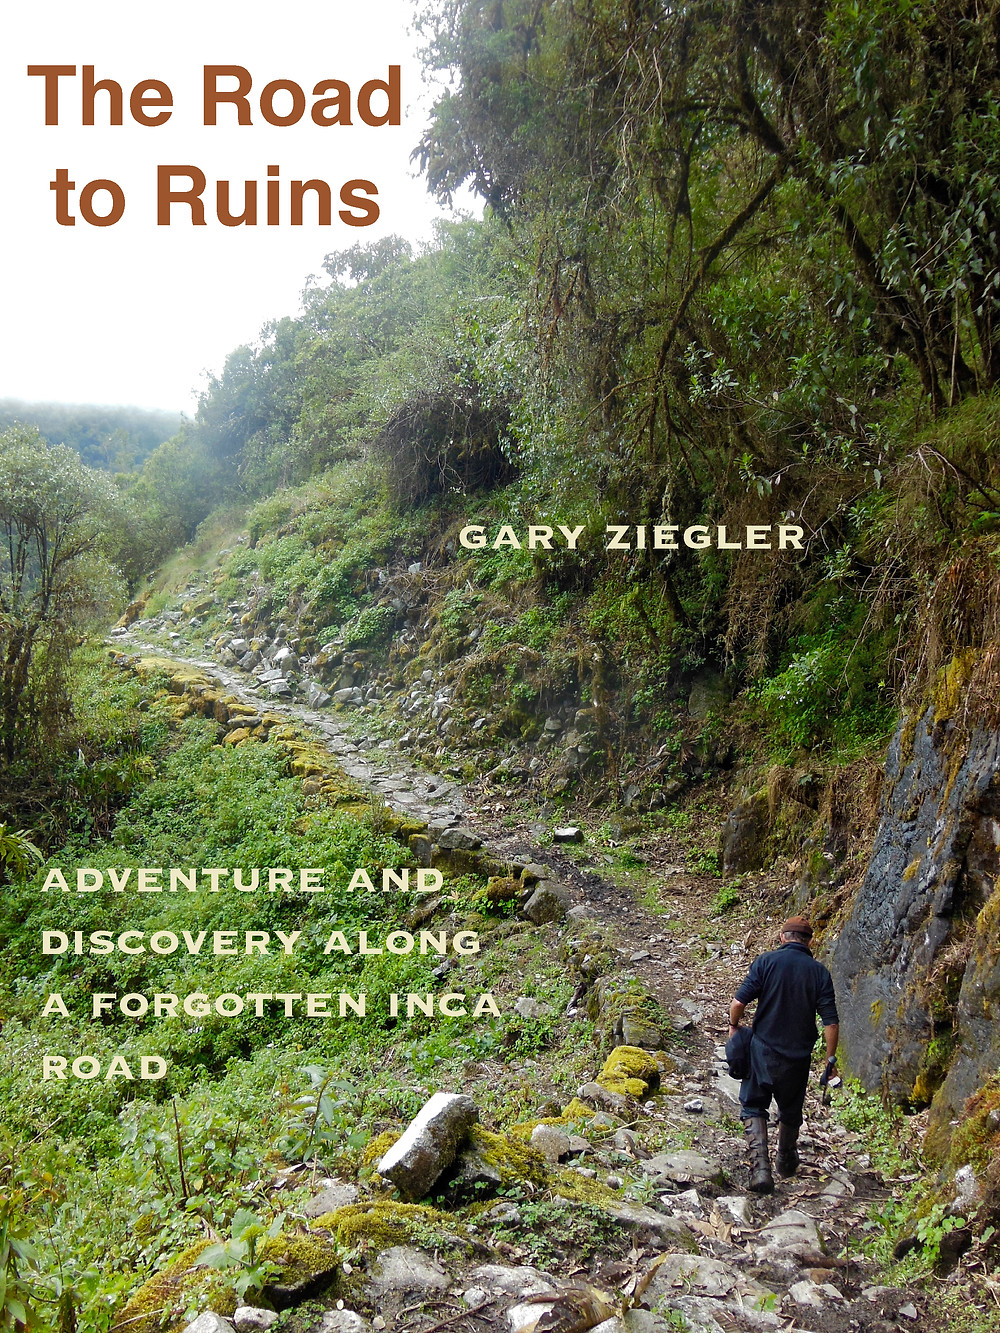 Adventure and discoveries on a lost Inca road